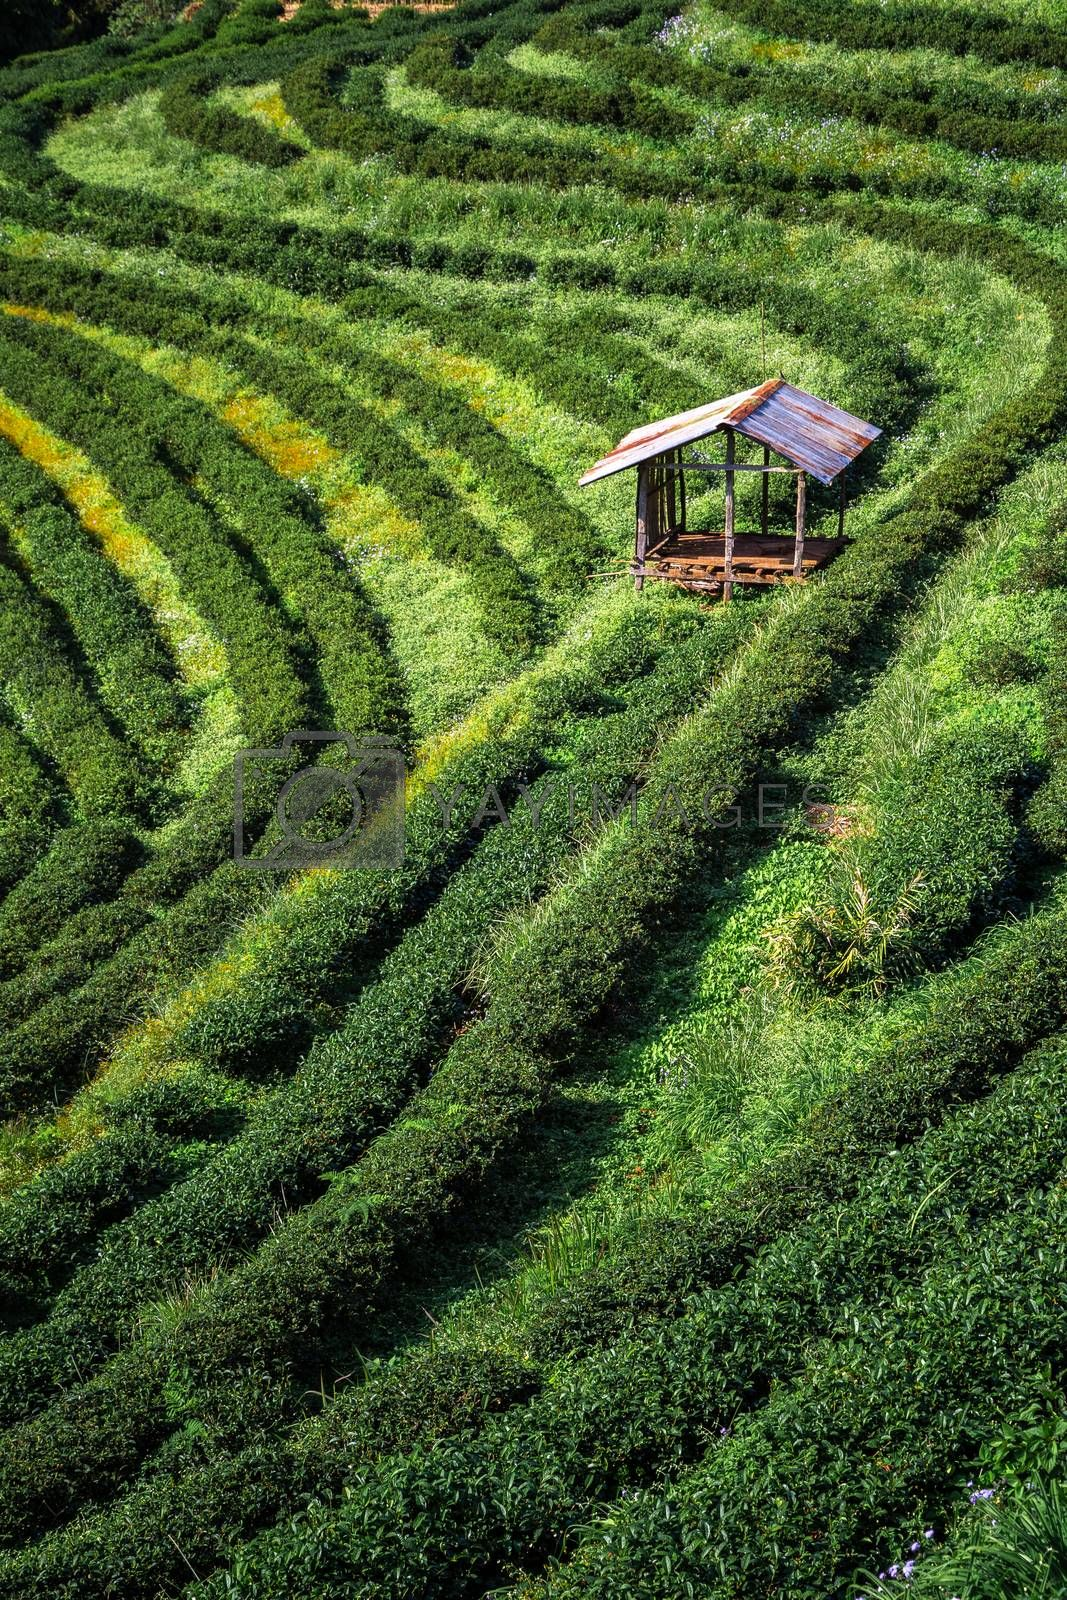 Small cottage in a field of tea farm, planting on slope of hill and mountain.